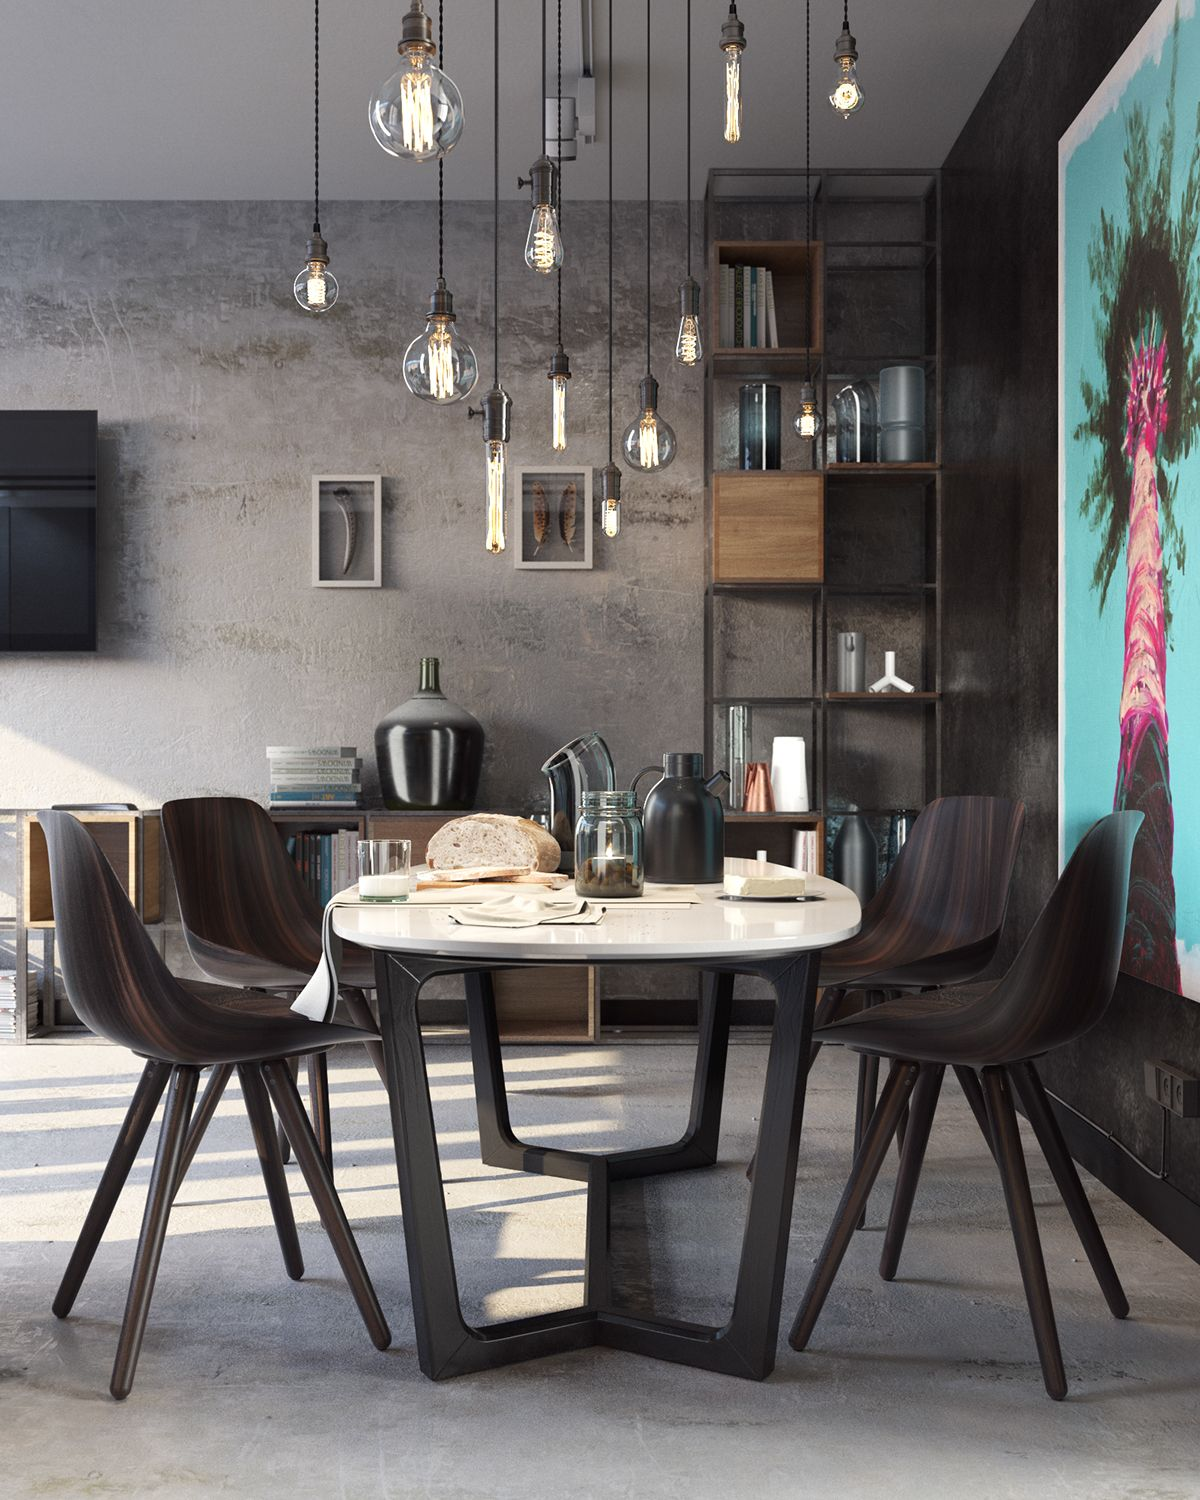 Modern Table With Chairs Sydney Studio On Behance Apartments Kitchen Interior Dining